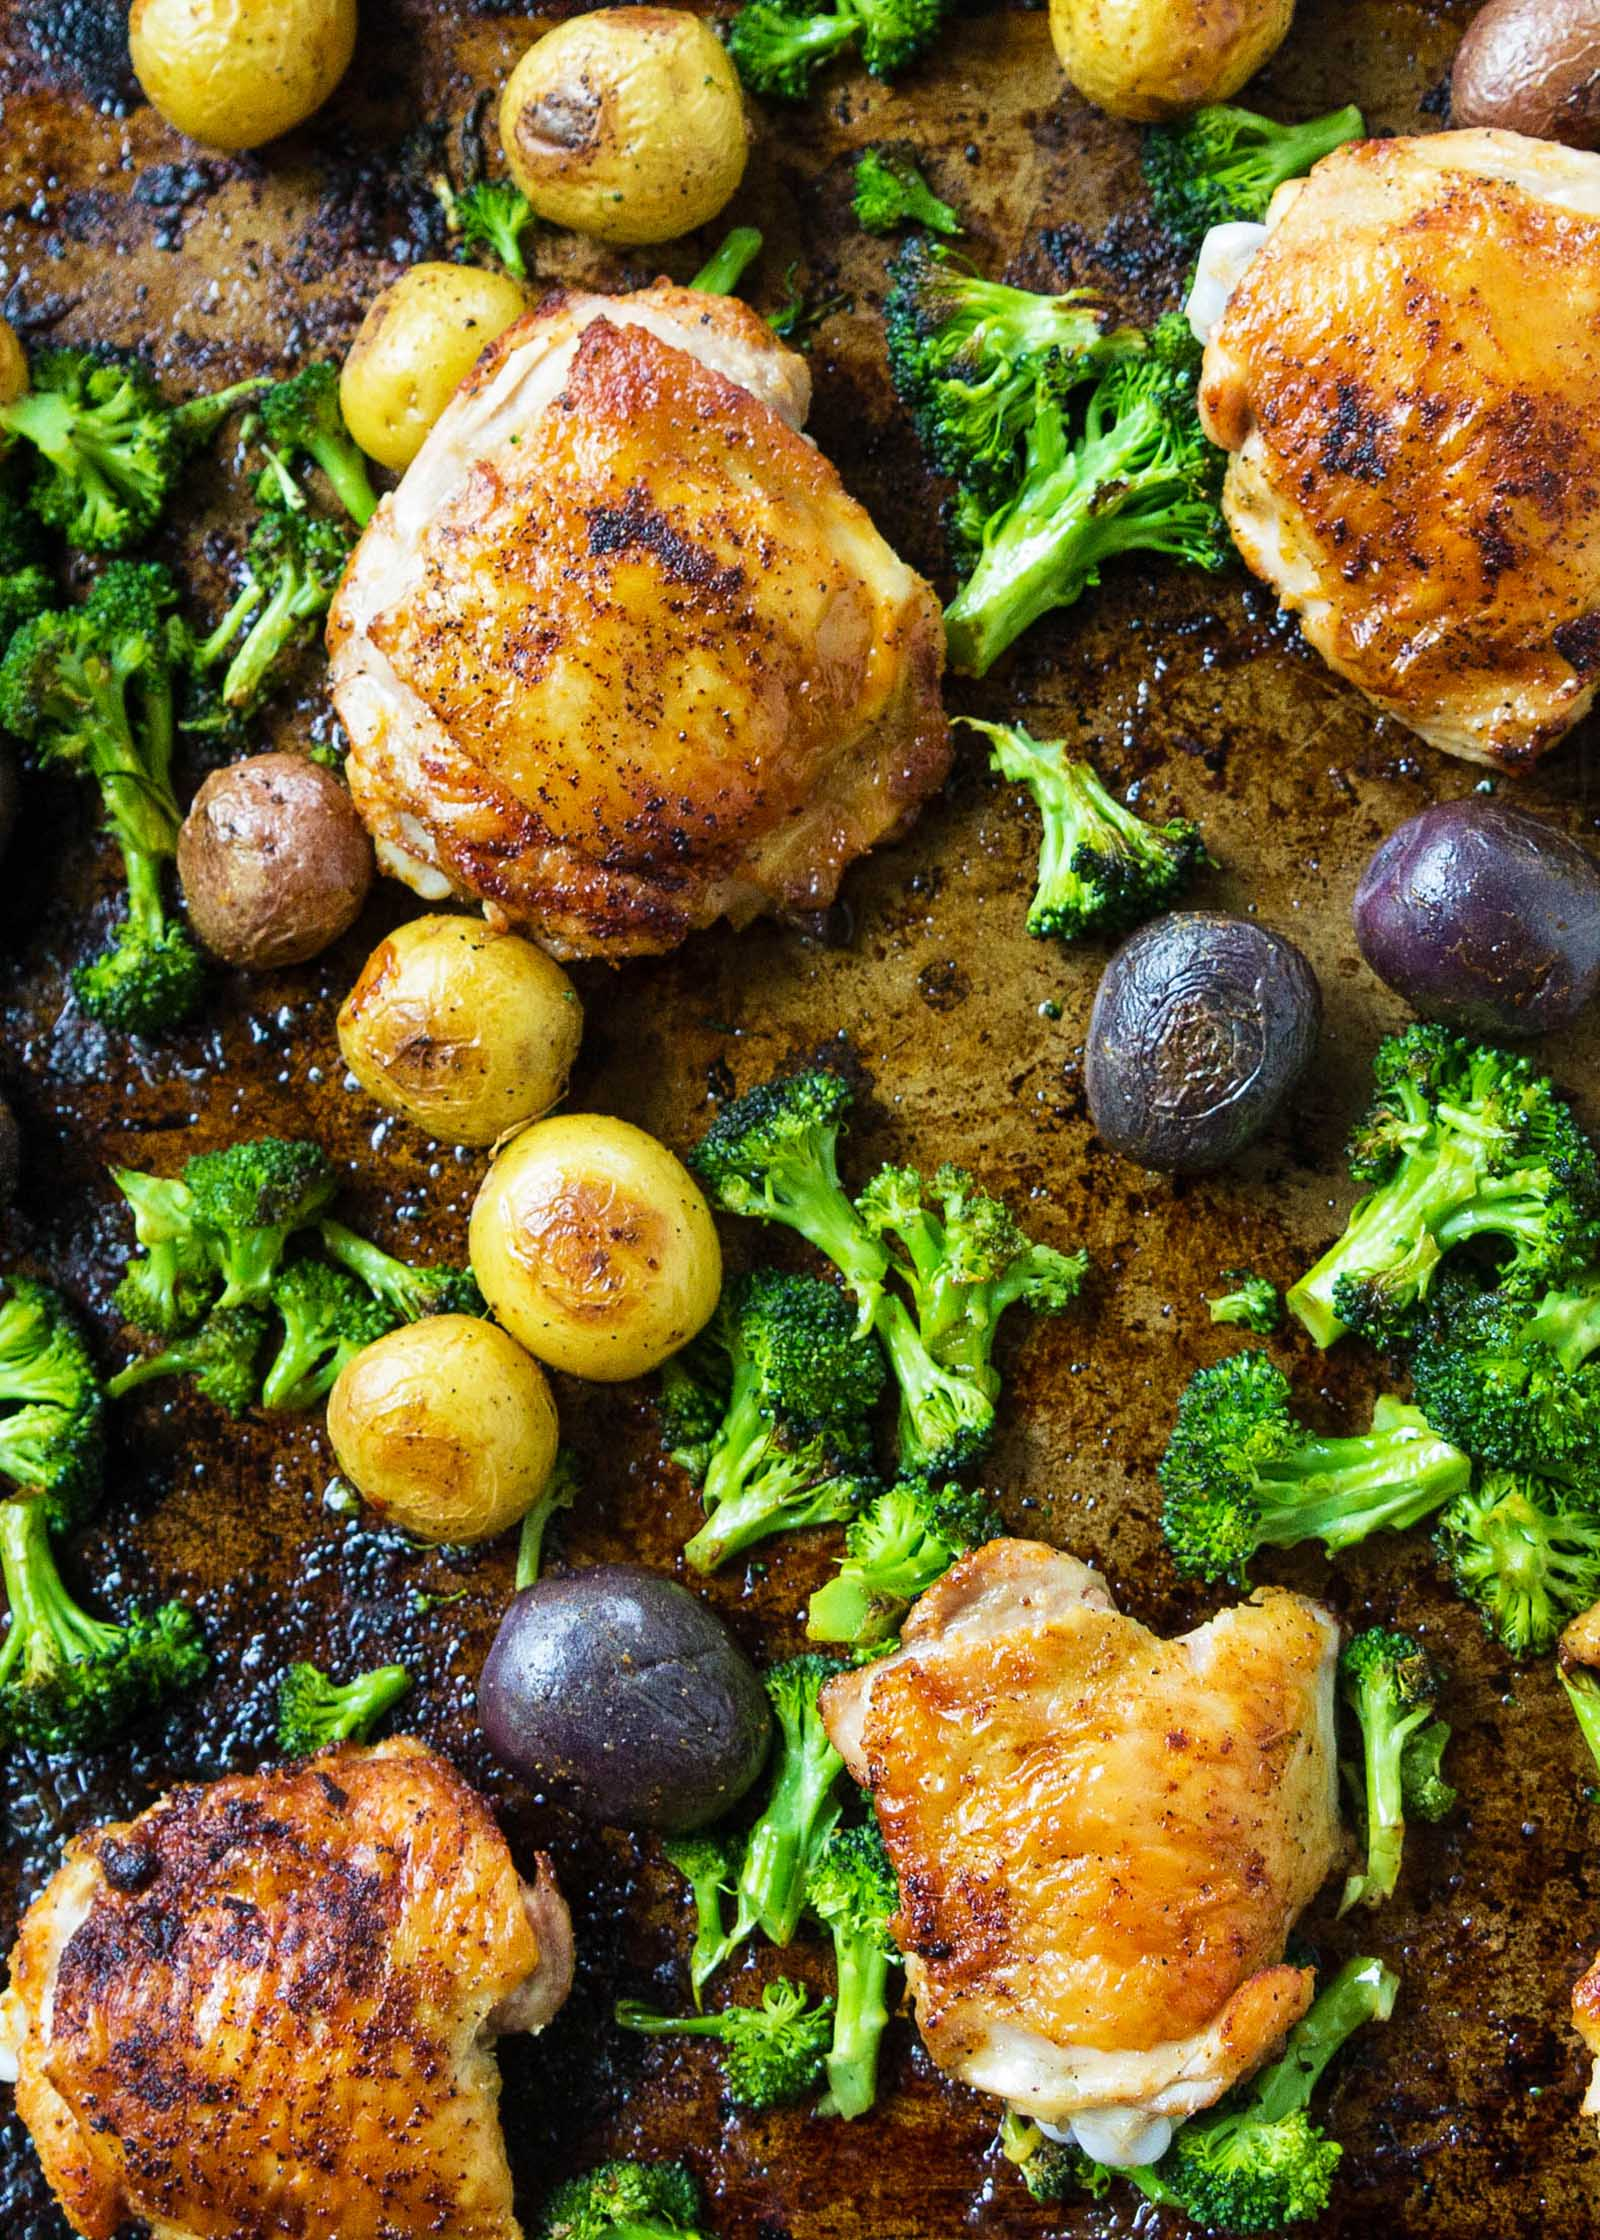 Sheet Pan Chicken with Roasted Broccoli and Potatoes from simplyrecipes.com on foodiecrush.com